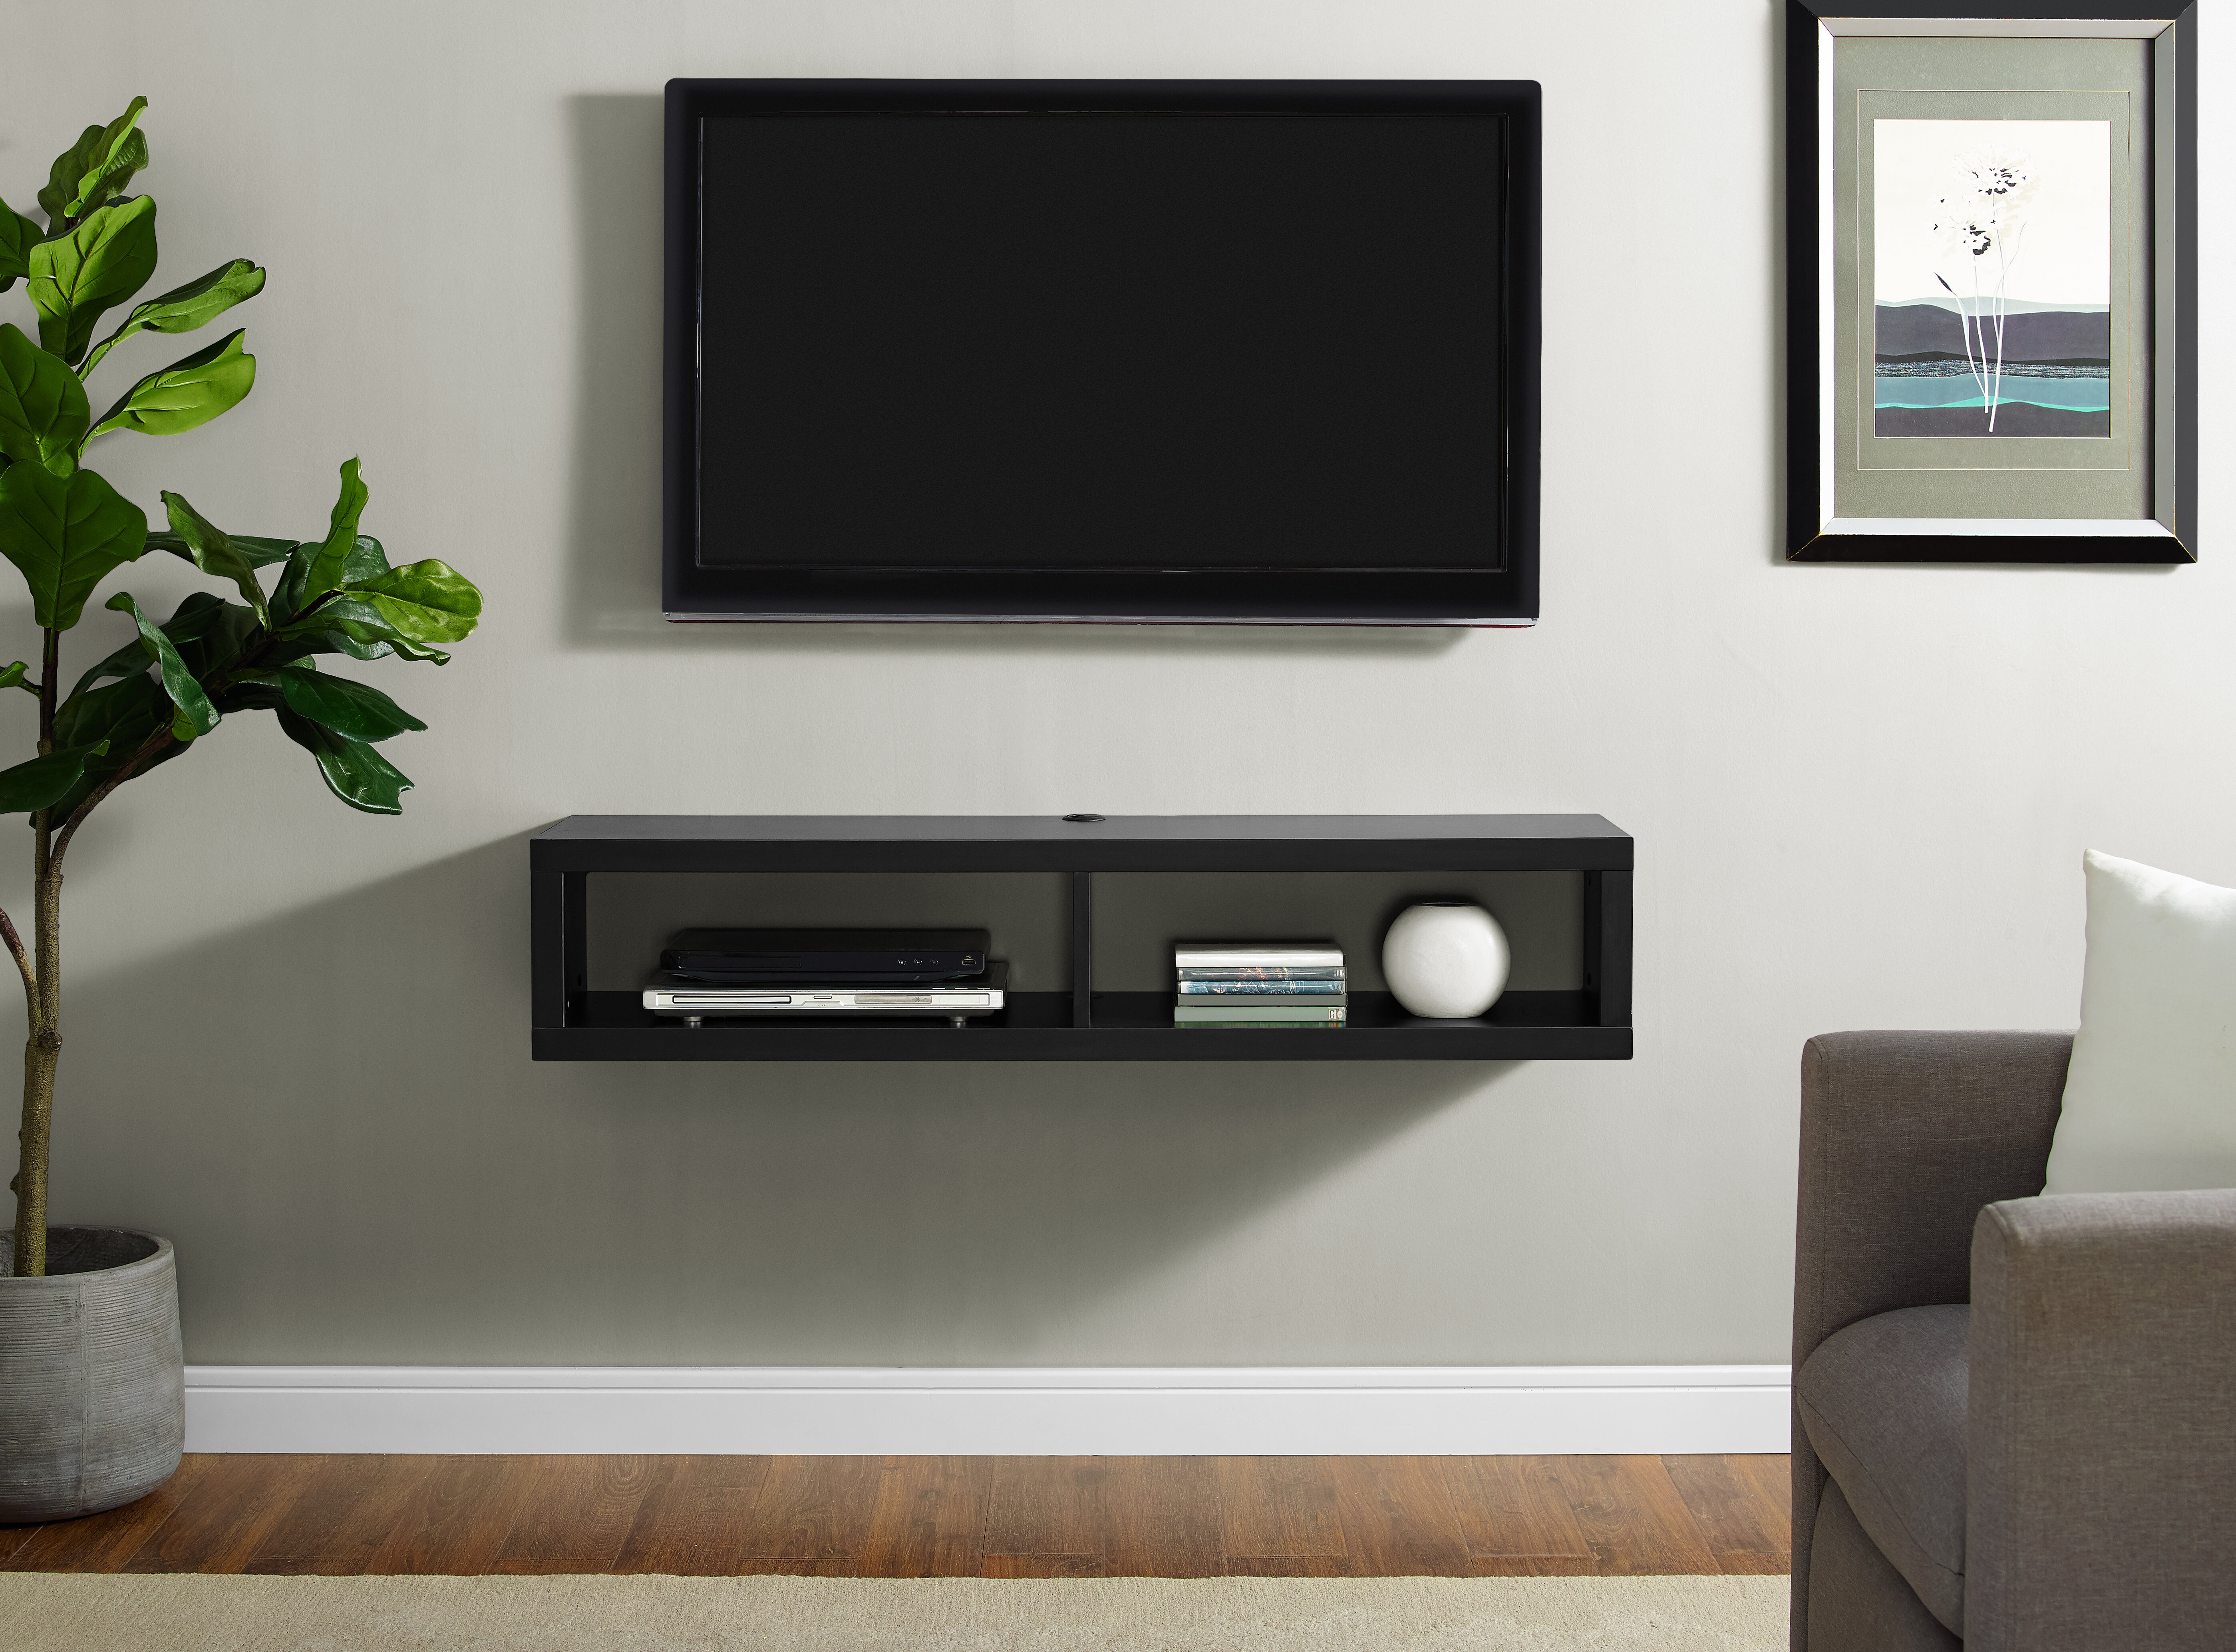 Orren Ellis Modica Tv Stand For Tvs Up To 49 Reviews